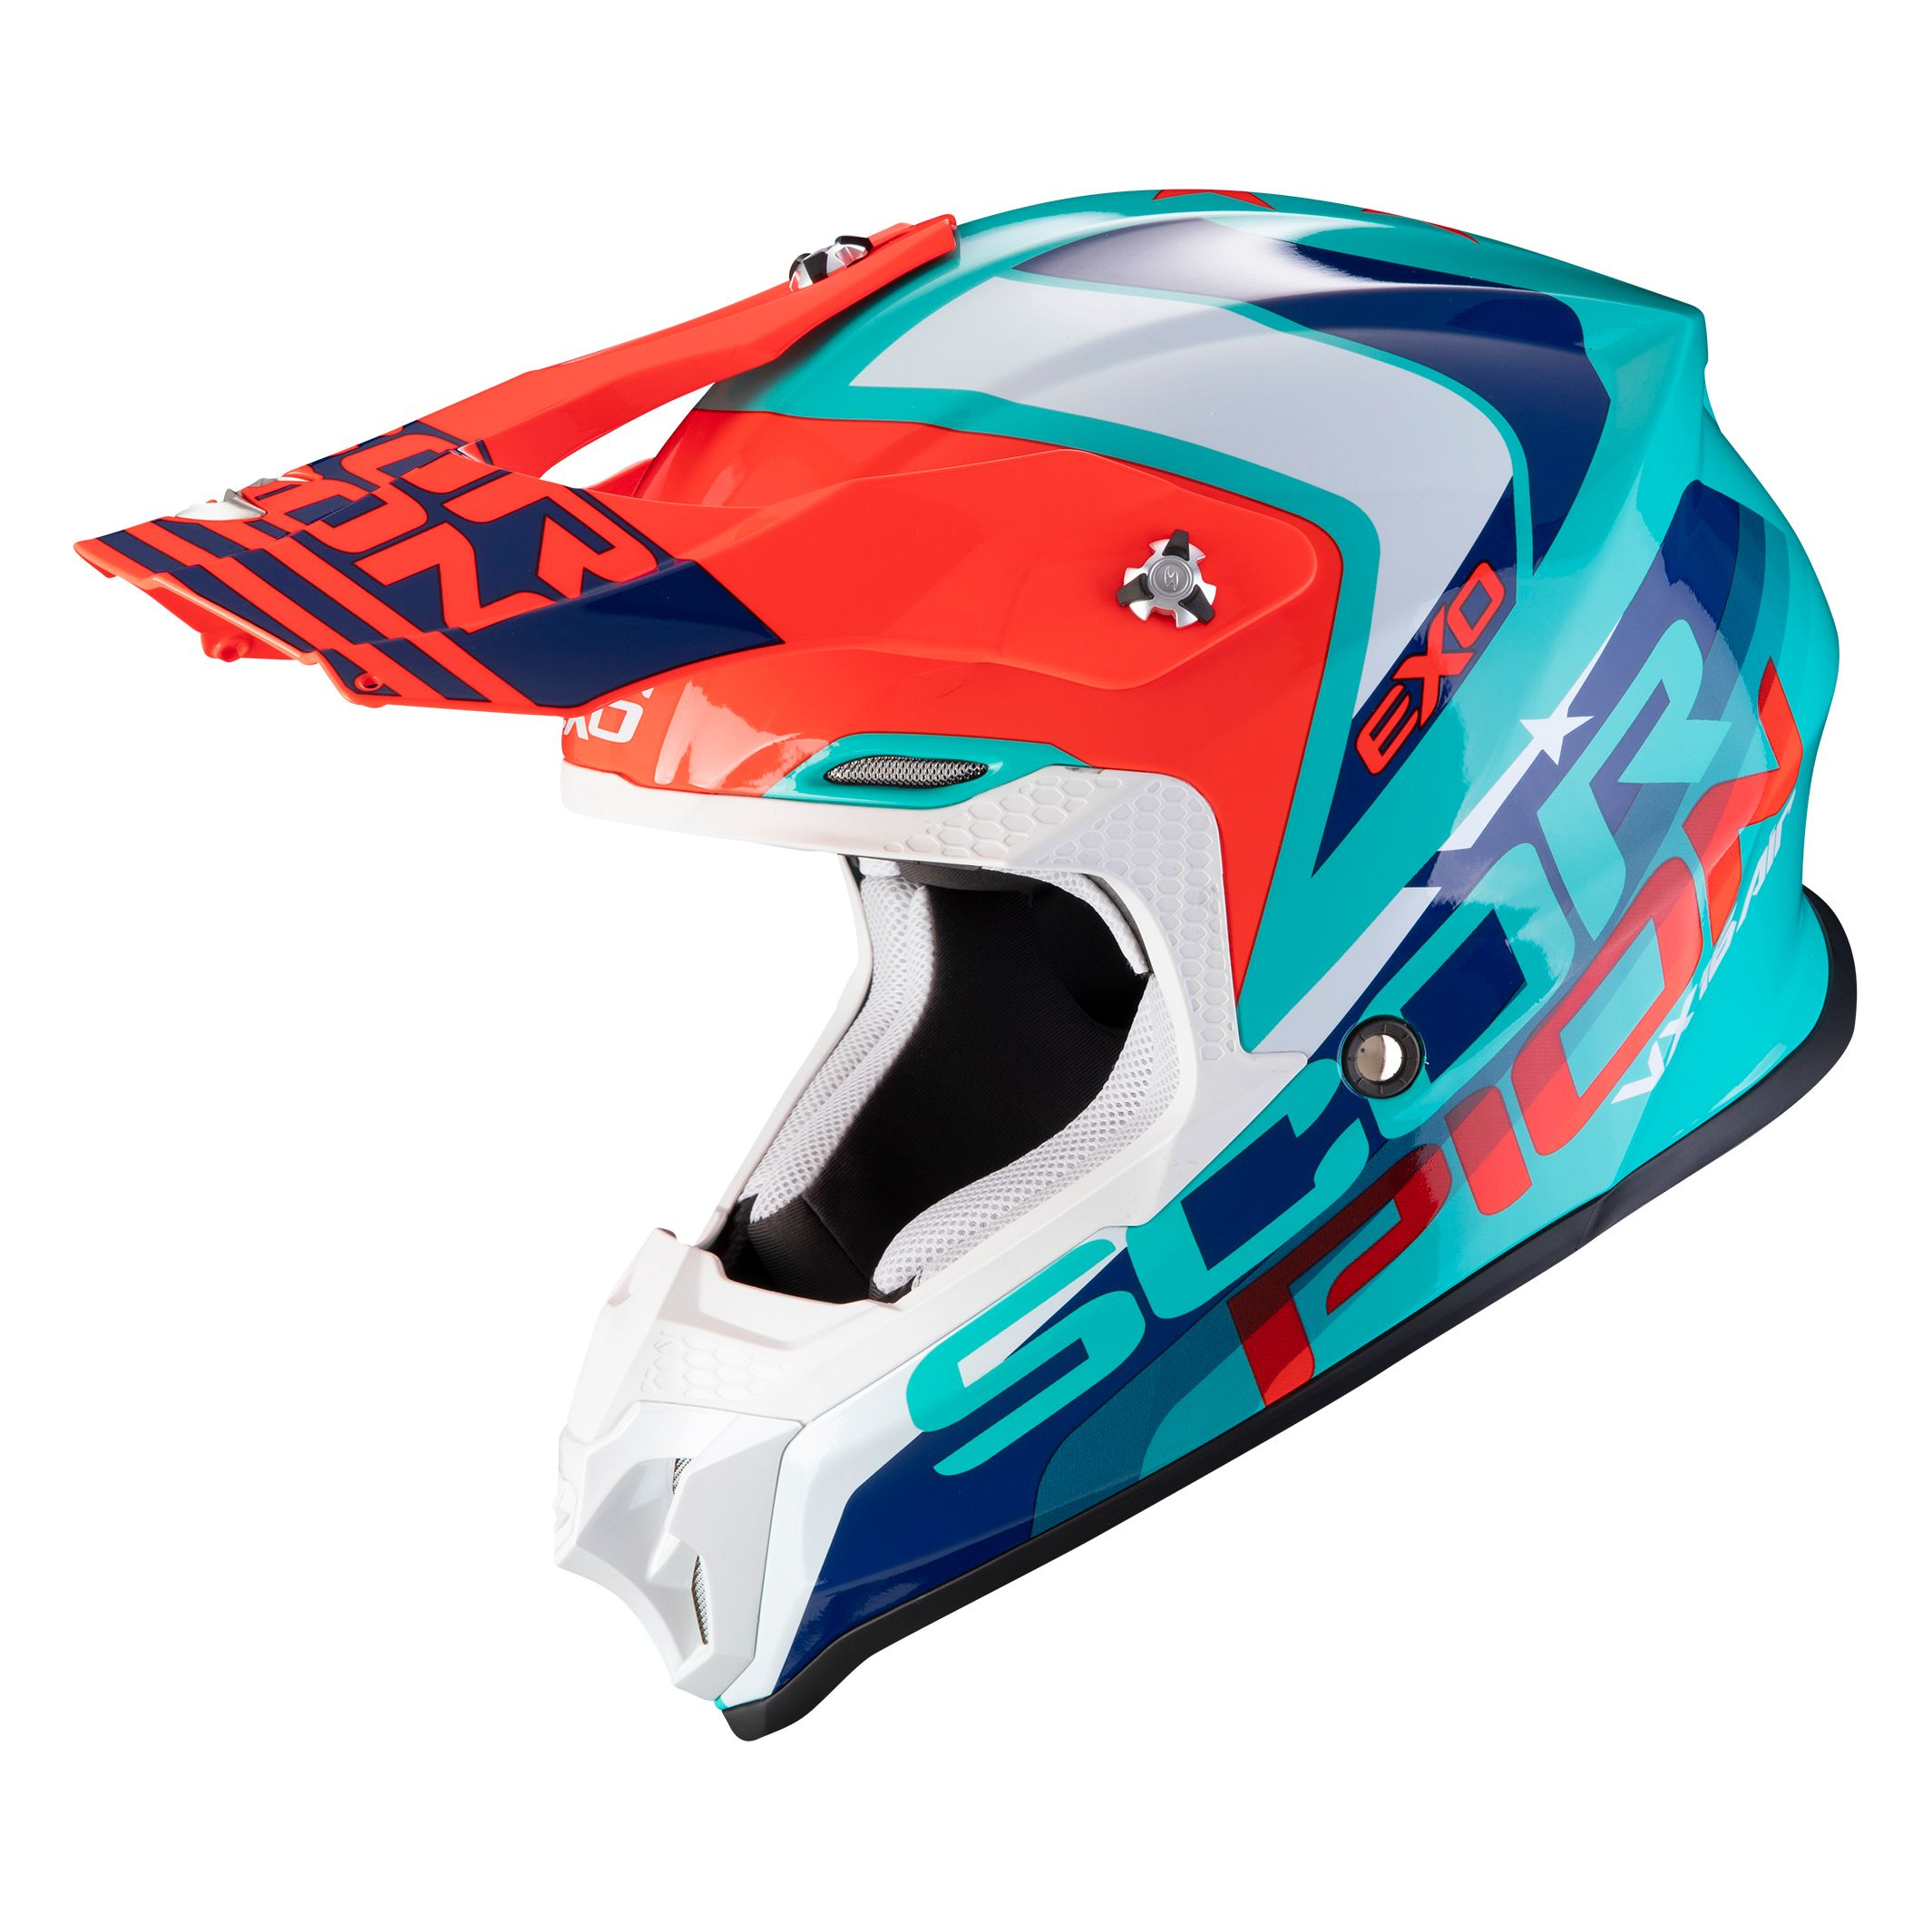 Casque cross Scorpion Exo VX-16 AIR - NATION - GREEN BLUE RED 2020